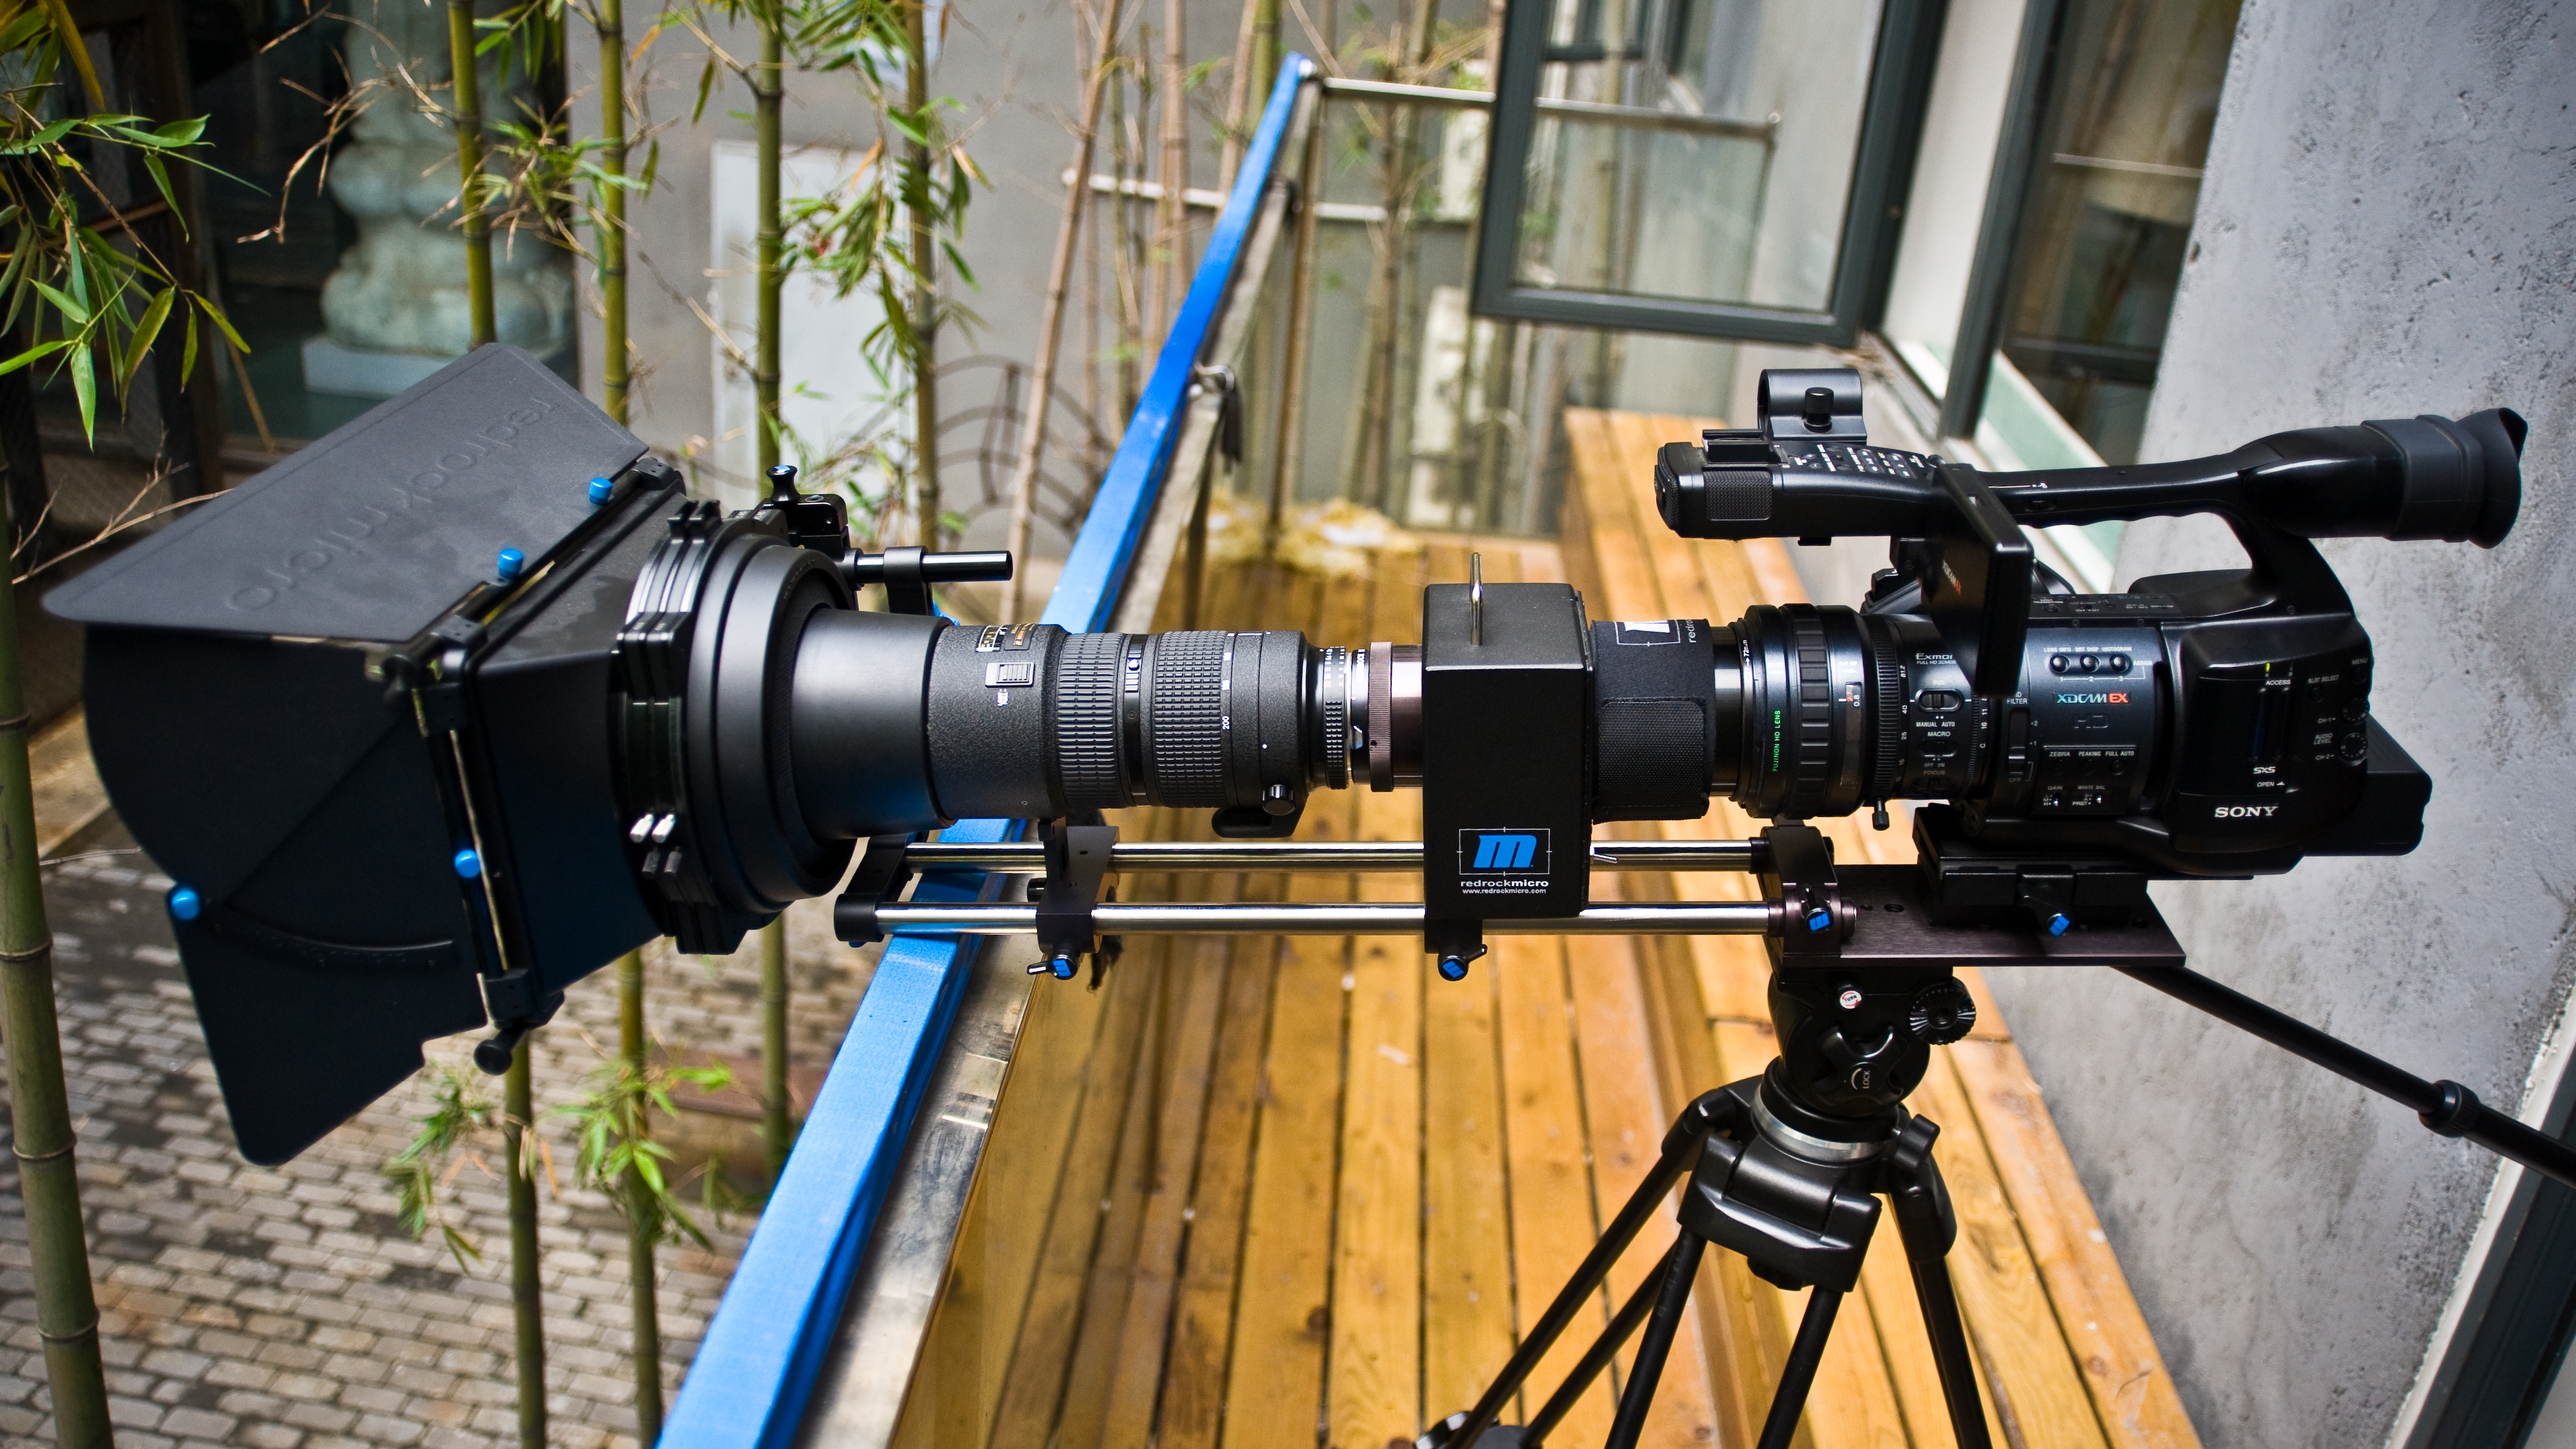 File:Sony PMW-EX1 XDCAM EX Compact Camcorder CineAlta with Redrock